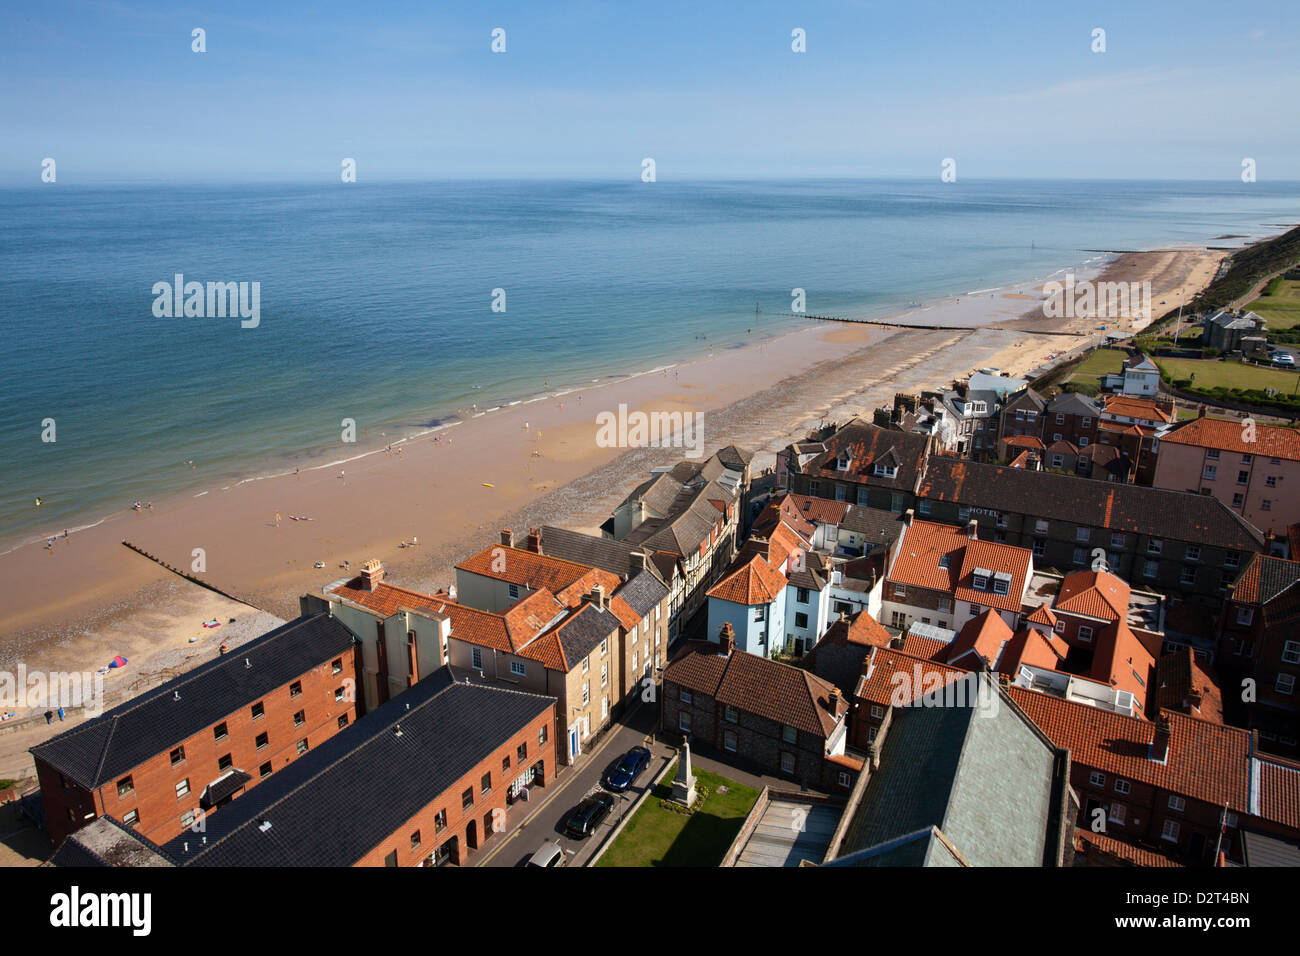 The Beach from St. Peter and St. Paul Church Tower, Cromer, Norfolk, England, United Kingdom, Europe - Stock Image